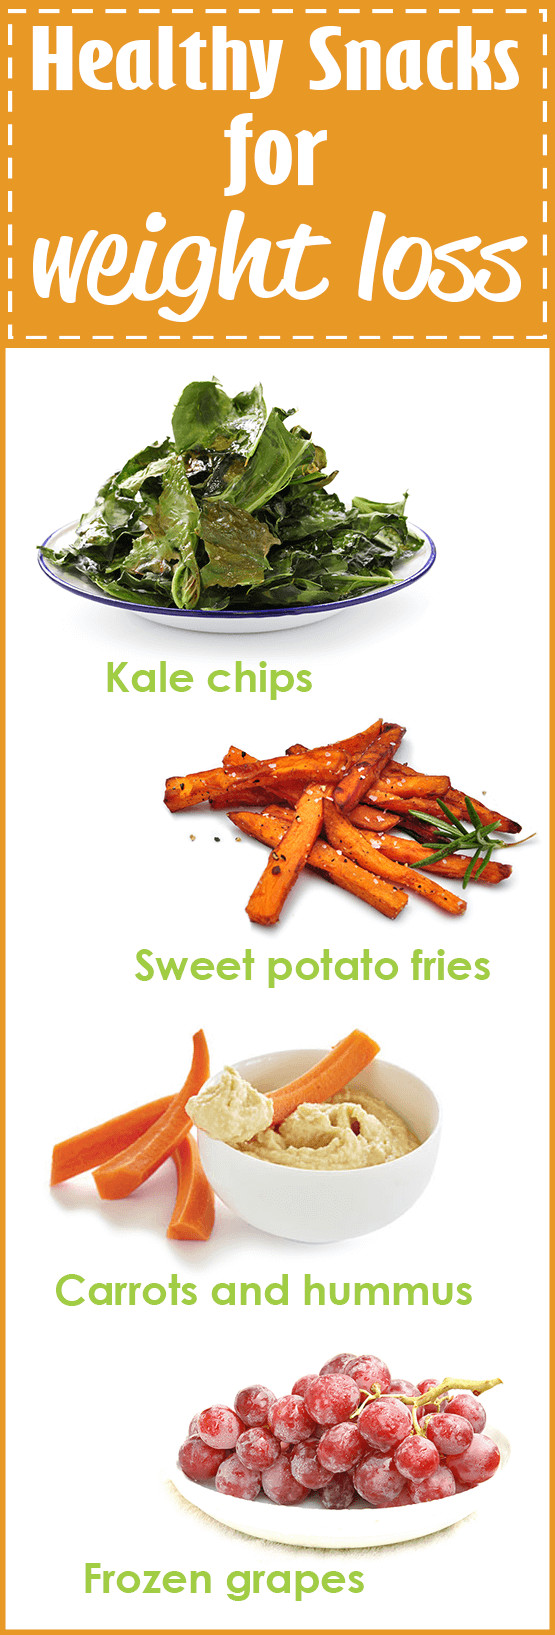 Healthy Snacks For Men'S Weight Loss  Healthy Snacks for Weight Loss •